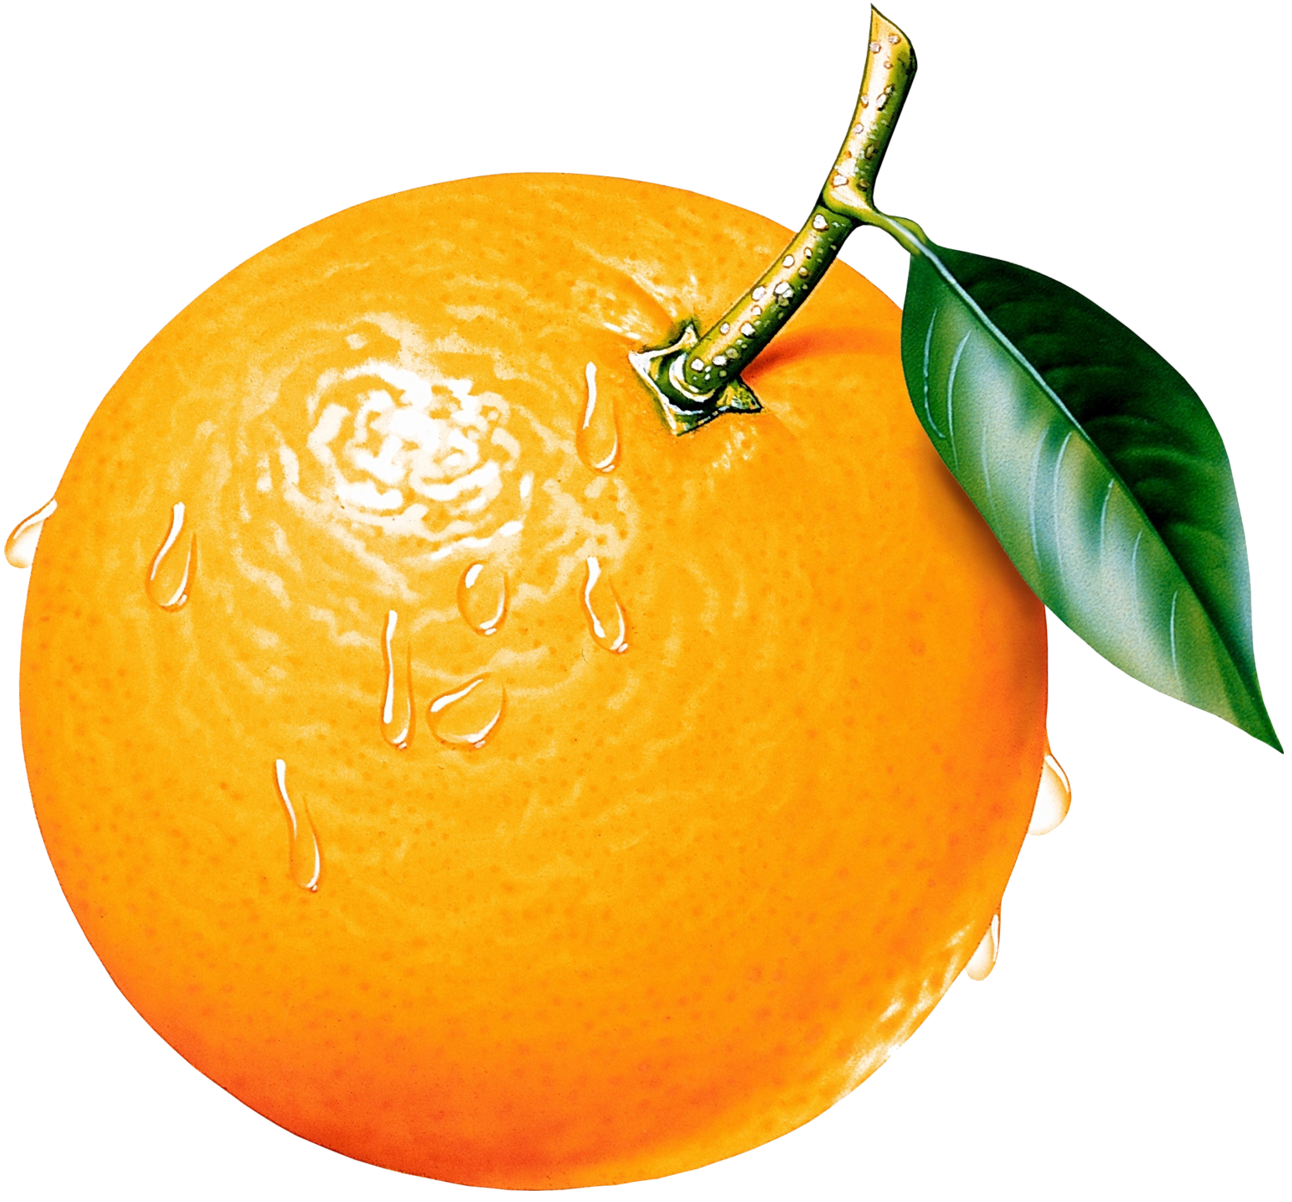 Best Orange Clip Art #16691 - Clipartion.com